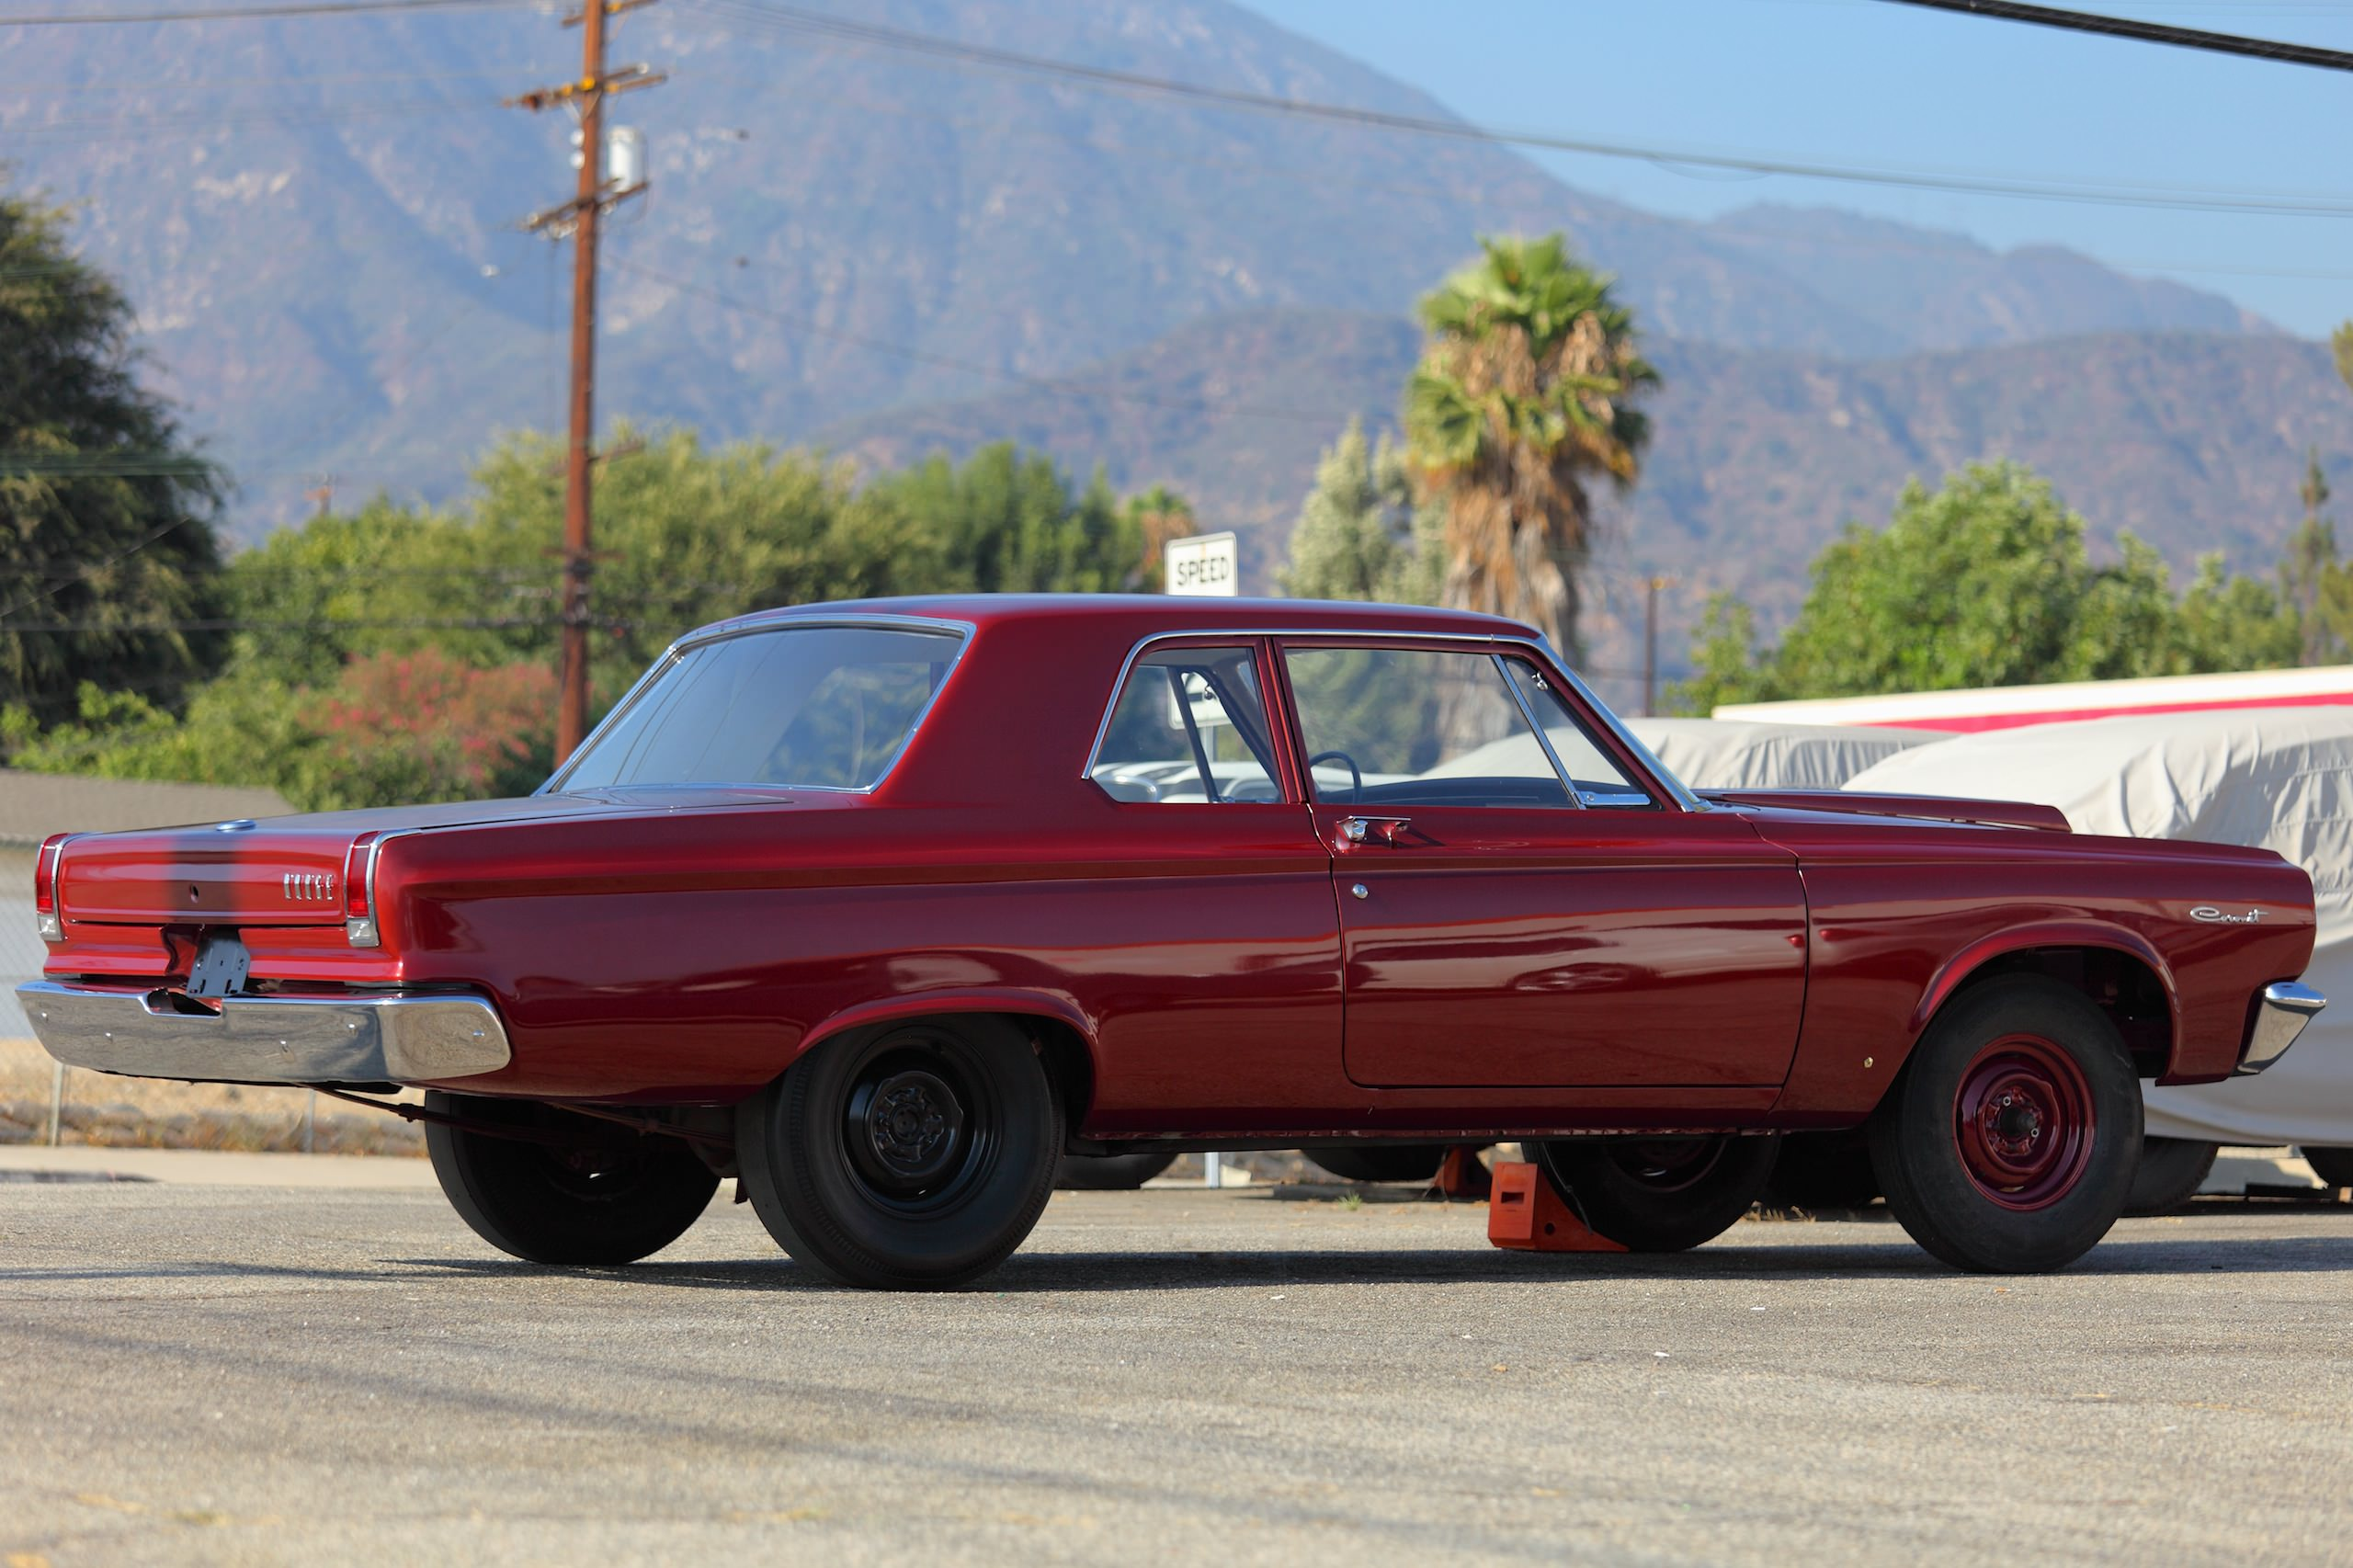 Rob Mosher's 1965 Hemi Coronet Project